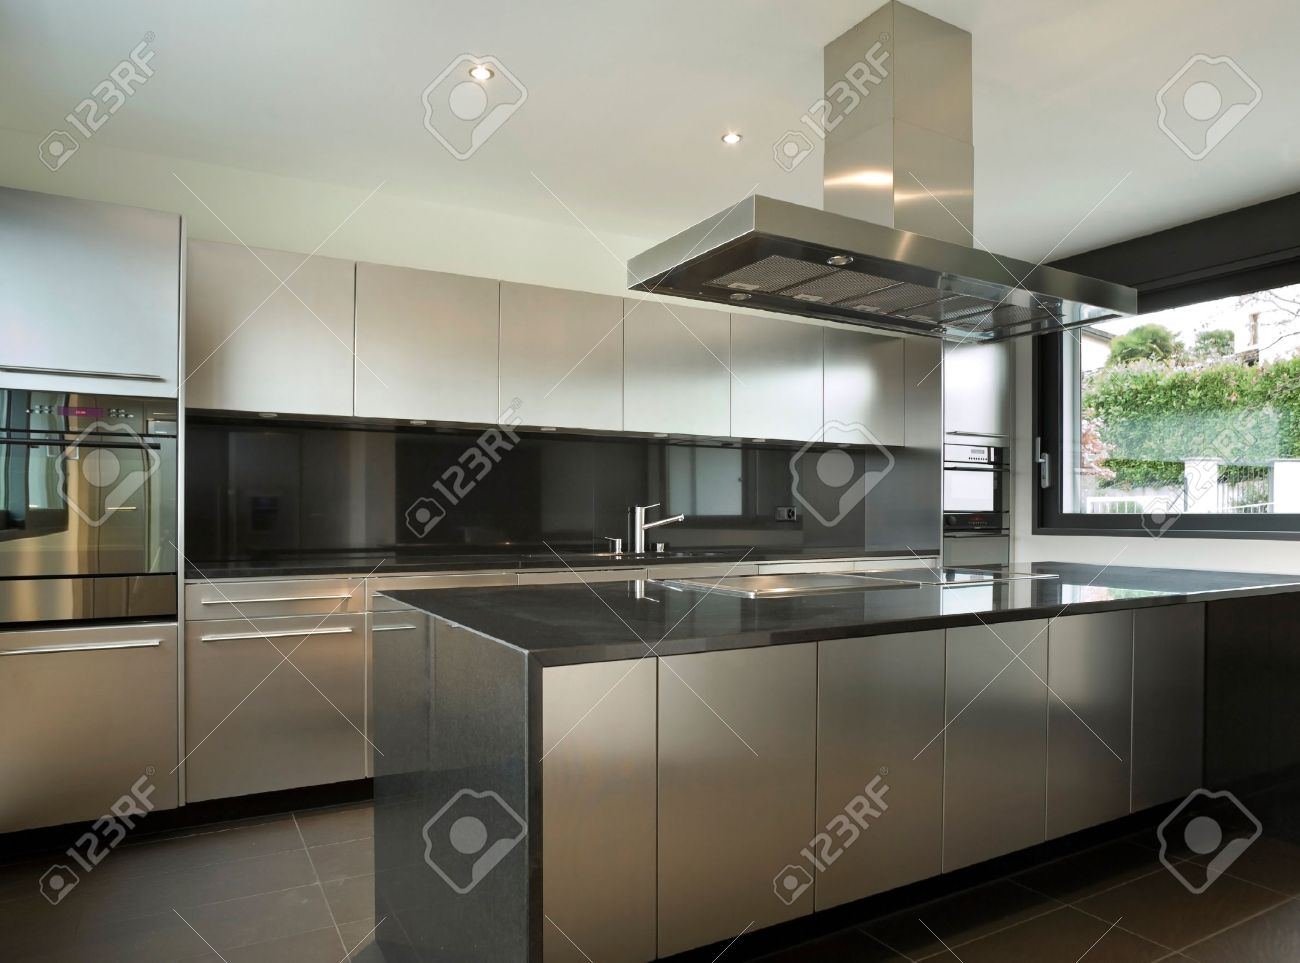 Interieur Maison Modern : Interior modern house kitchen stock photo picture and royalty free